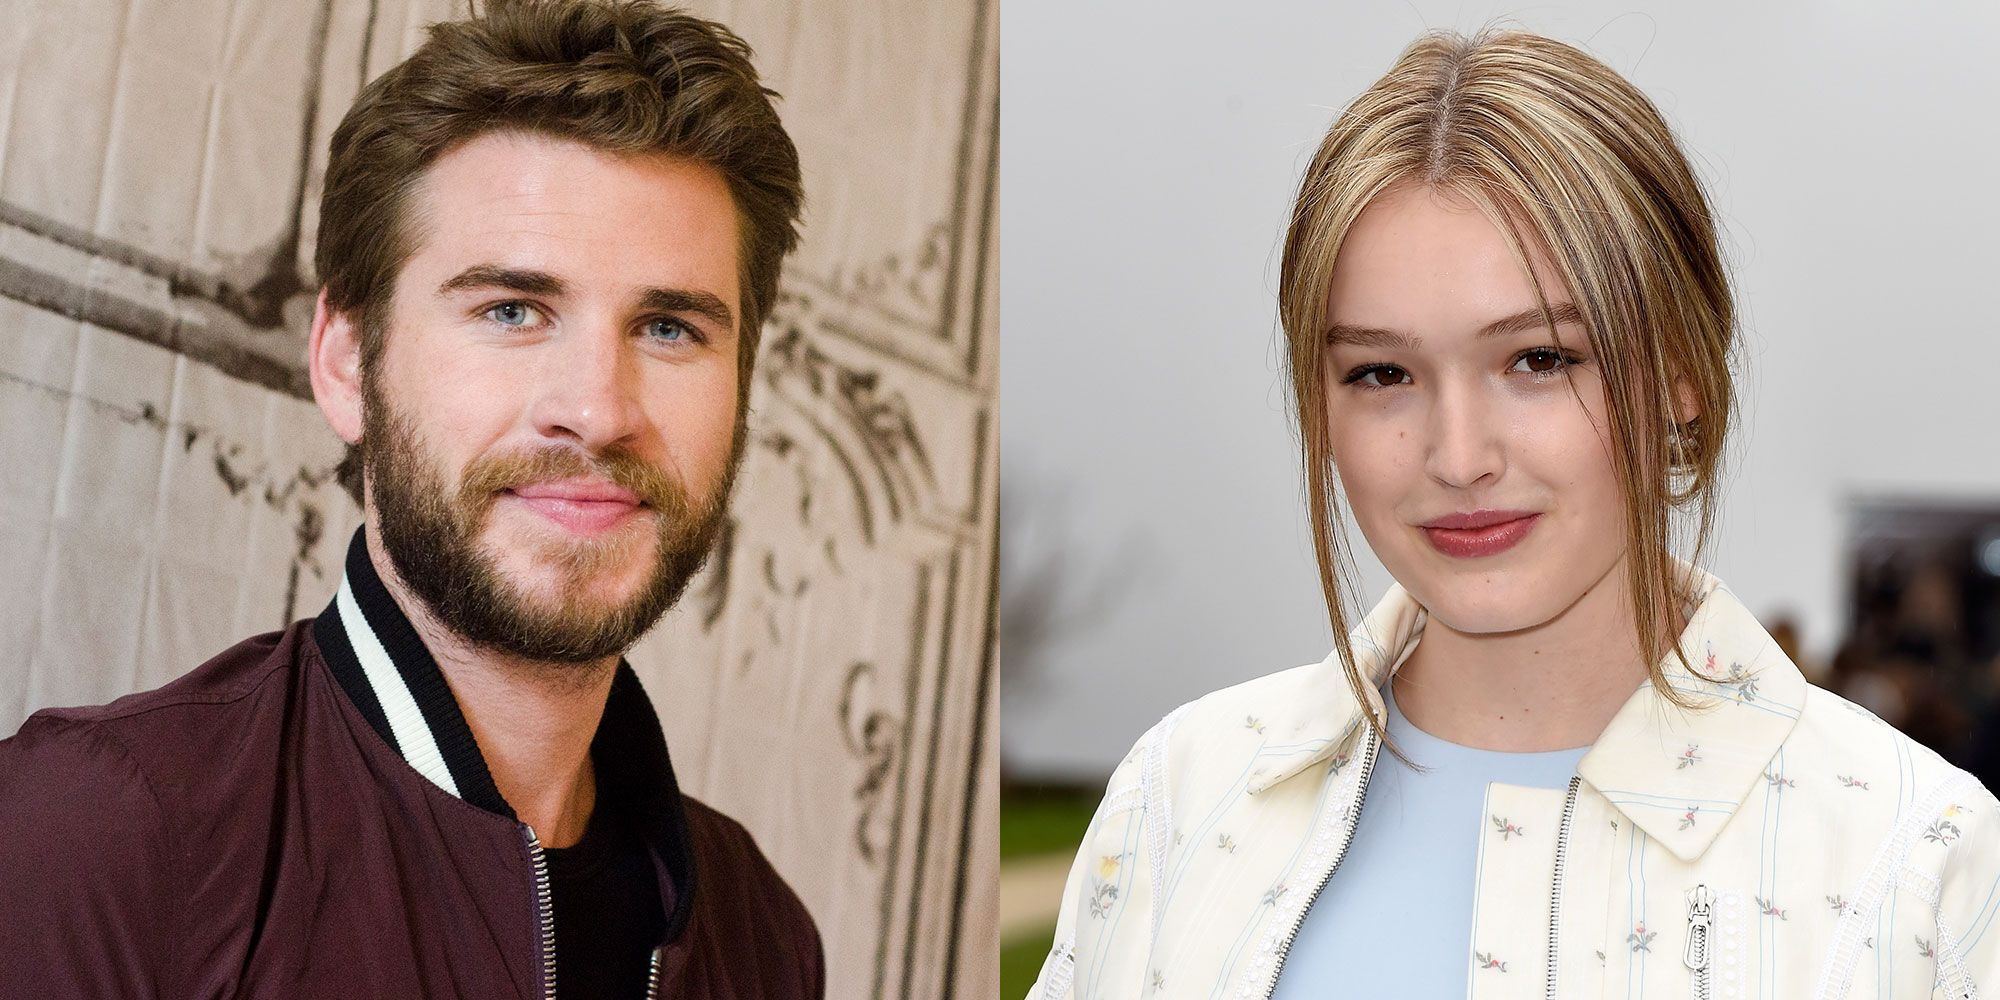 Liam Hemsworth was photographed kissing Maddison Brown and carrying a traffic cone -